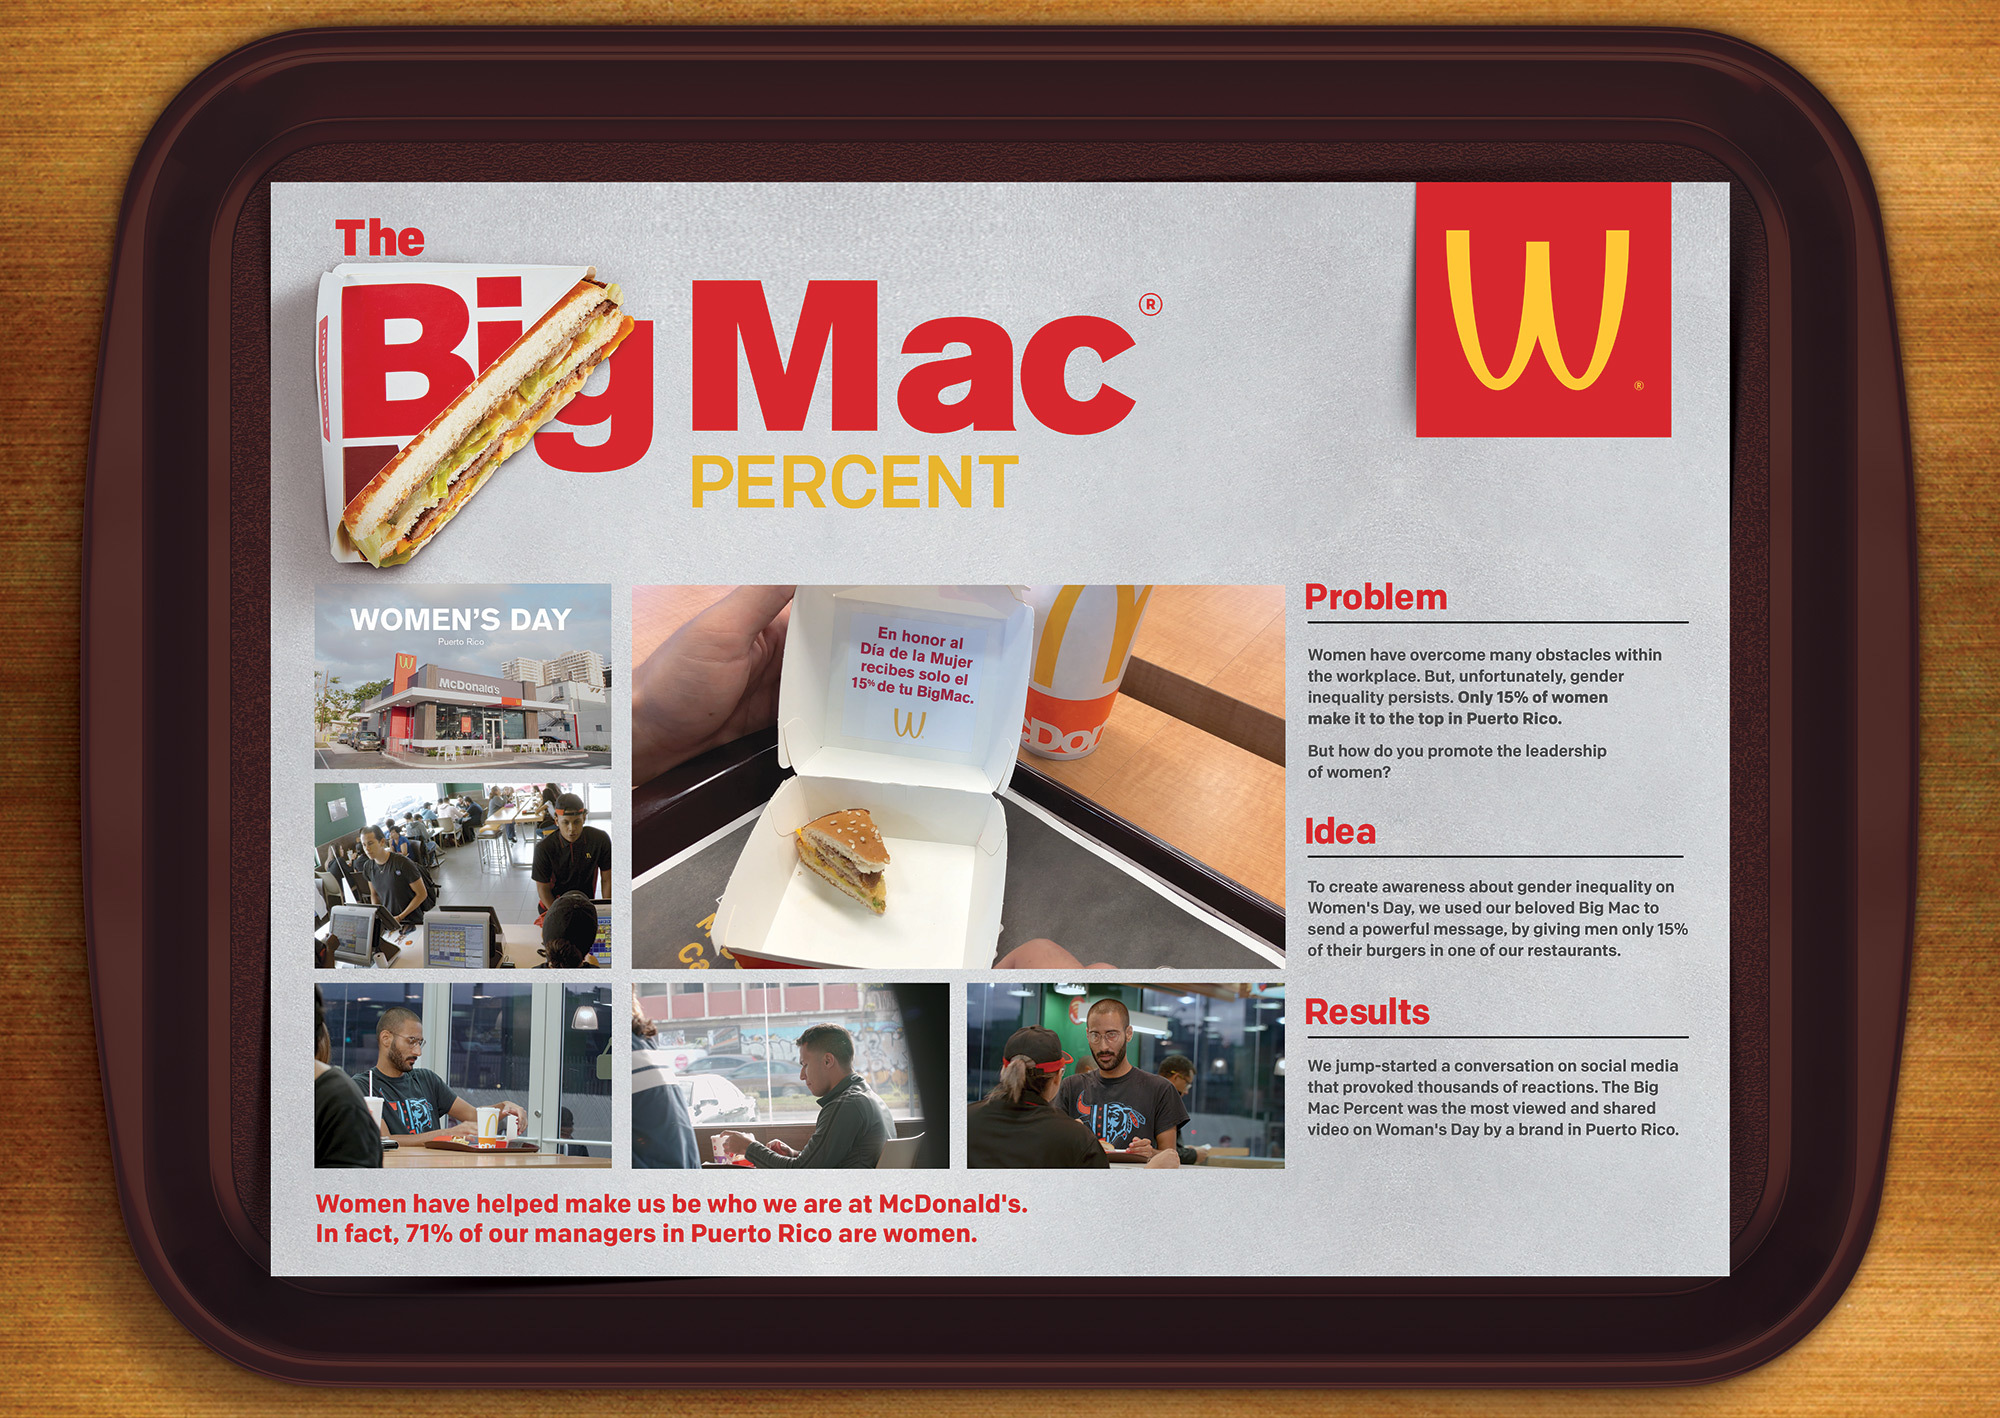 Big Mac Percent